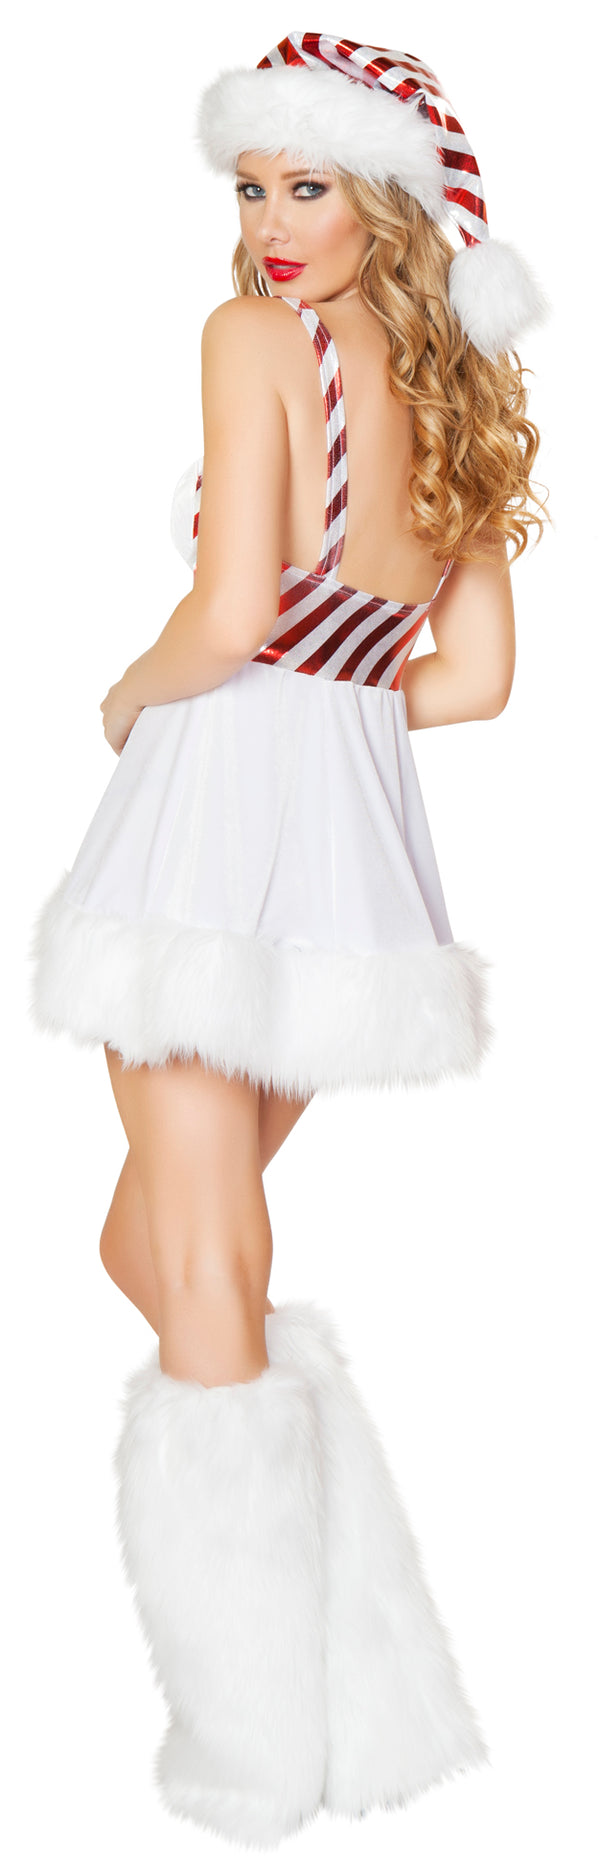 One Piece Candy Cane Cutie RMC175 Back